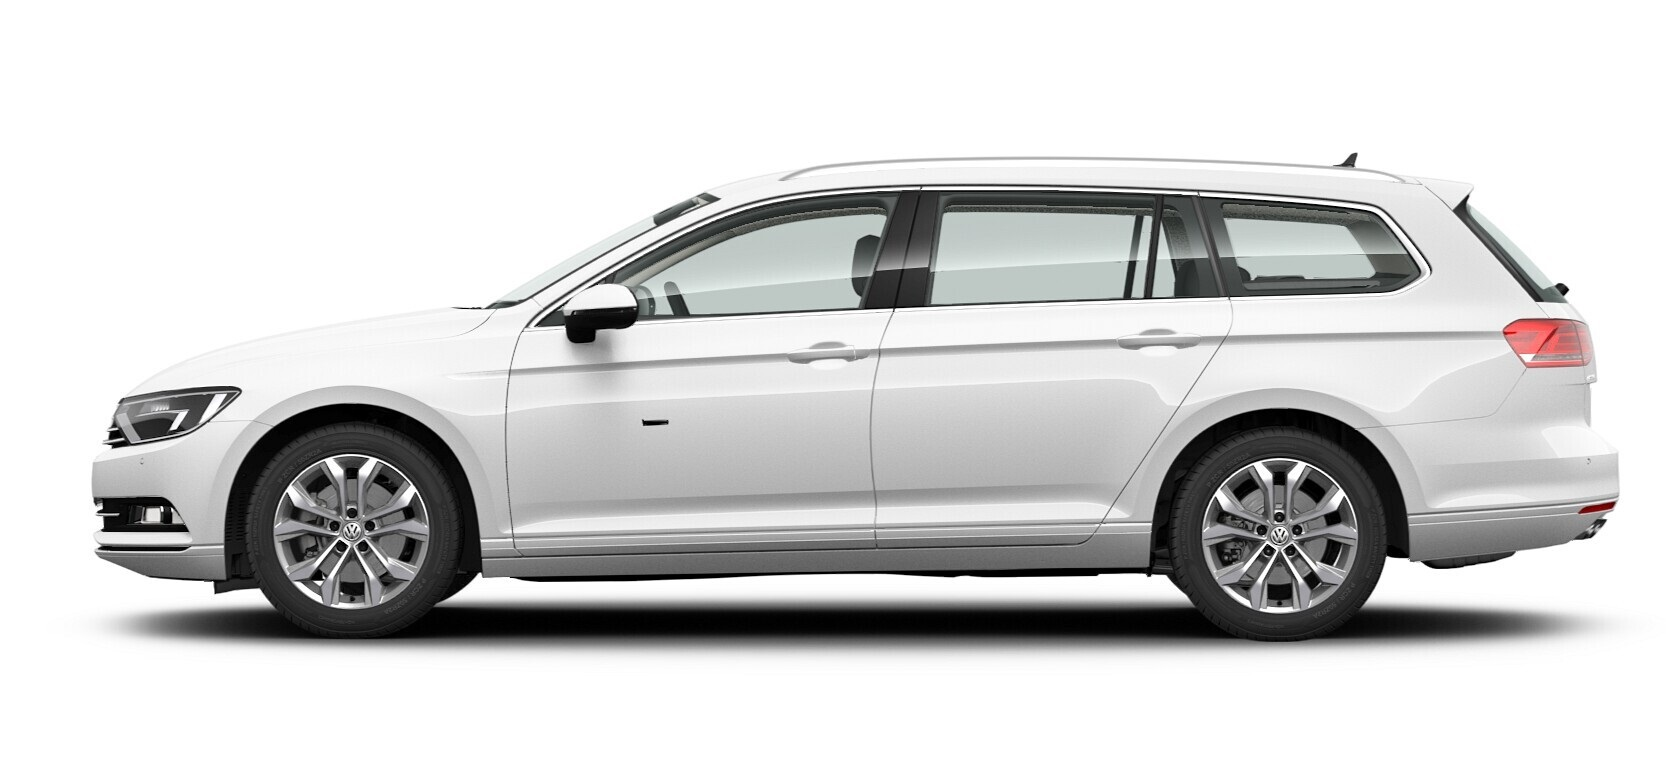 Passat Wagon 132TSI 7 Speed DSG